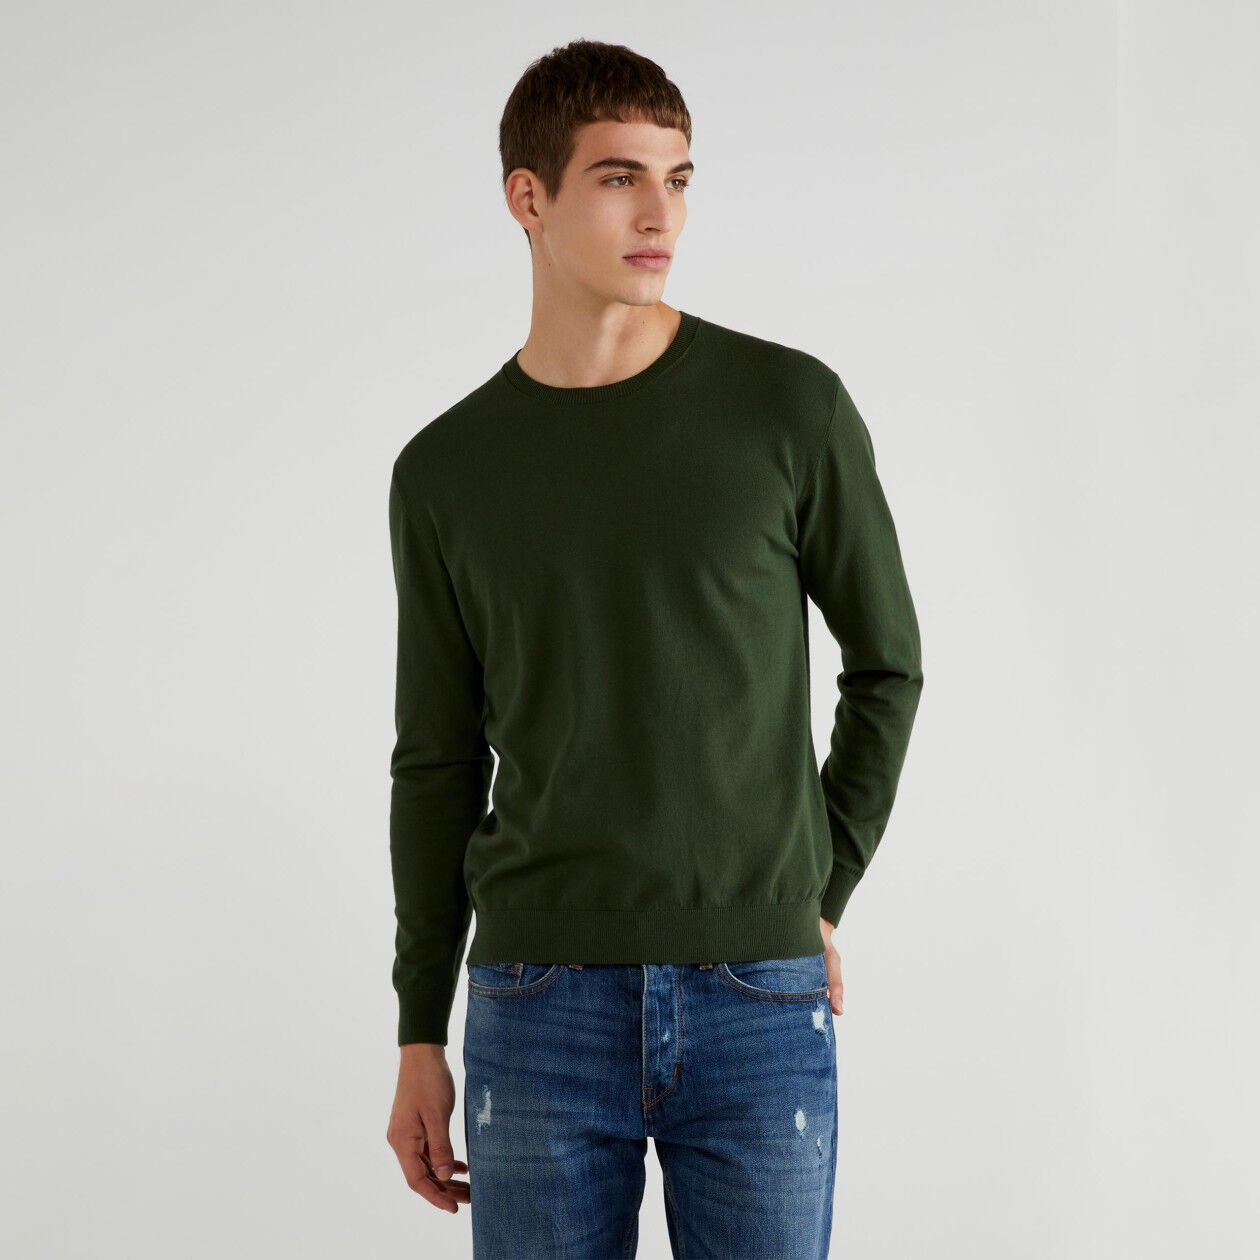 Crew neck sweater in tricot cotton